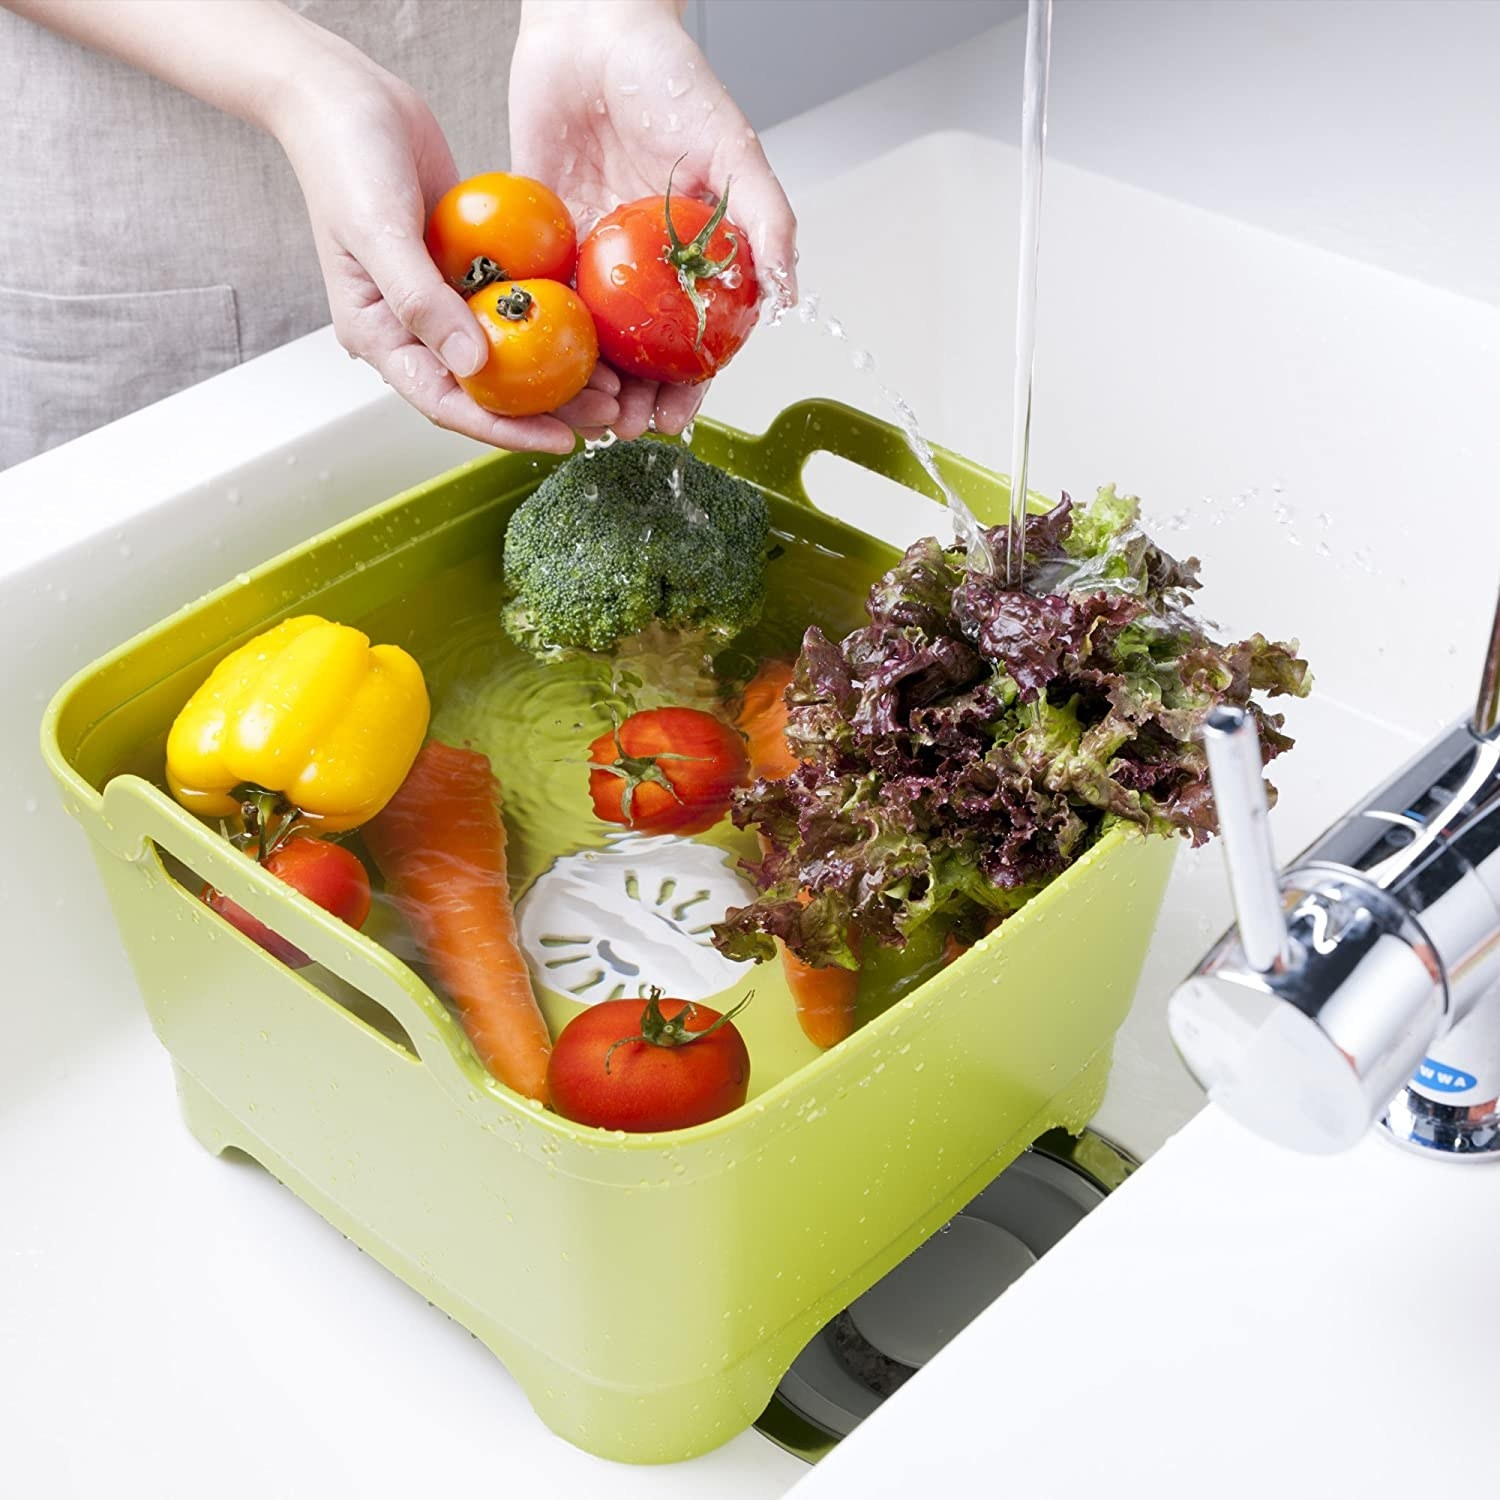 The dish tub filled with veggies in a sink